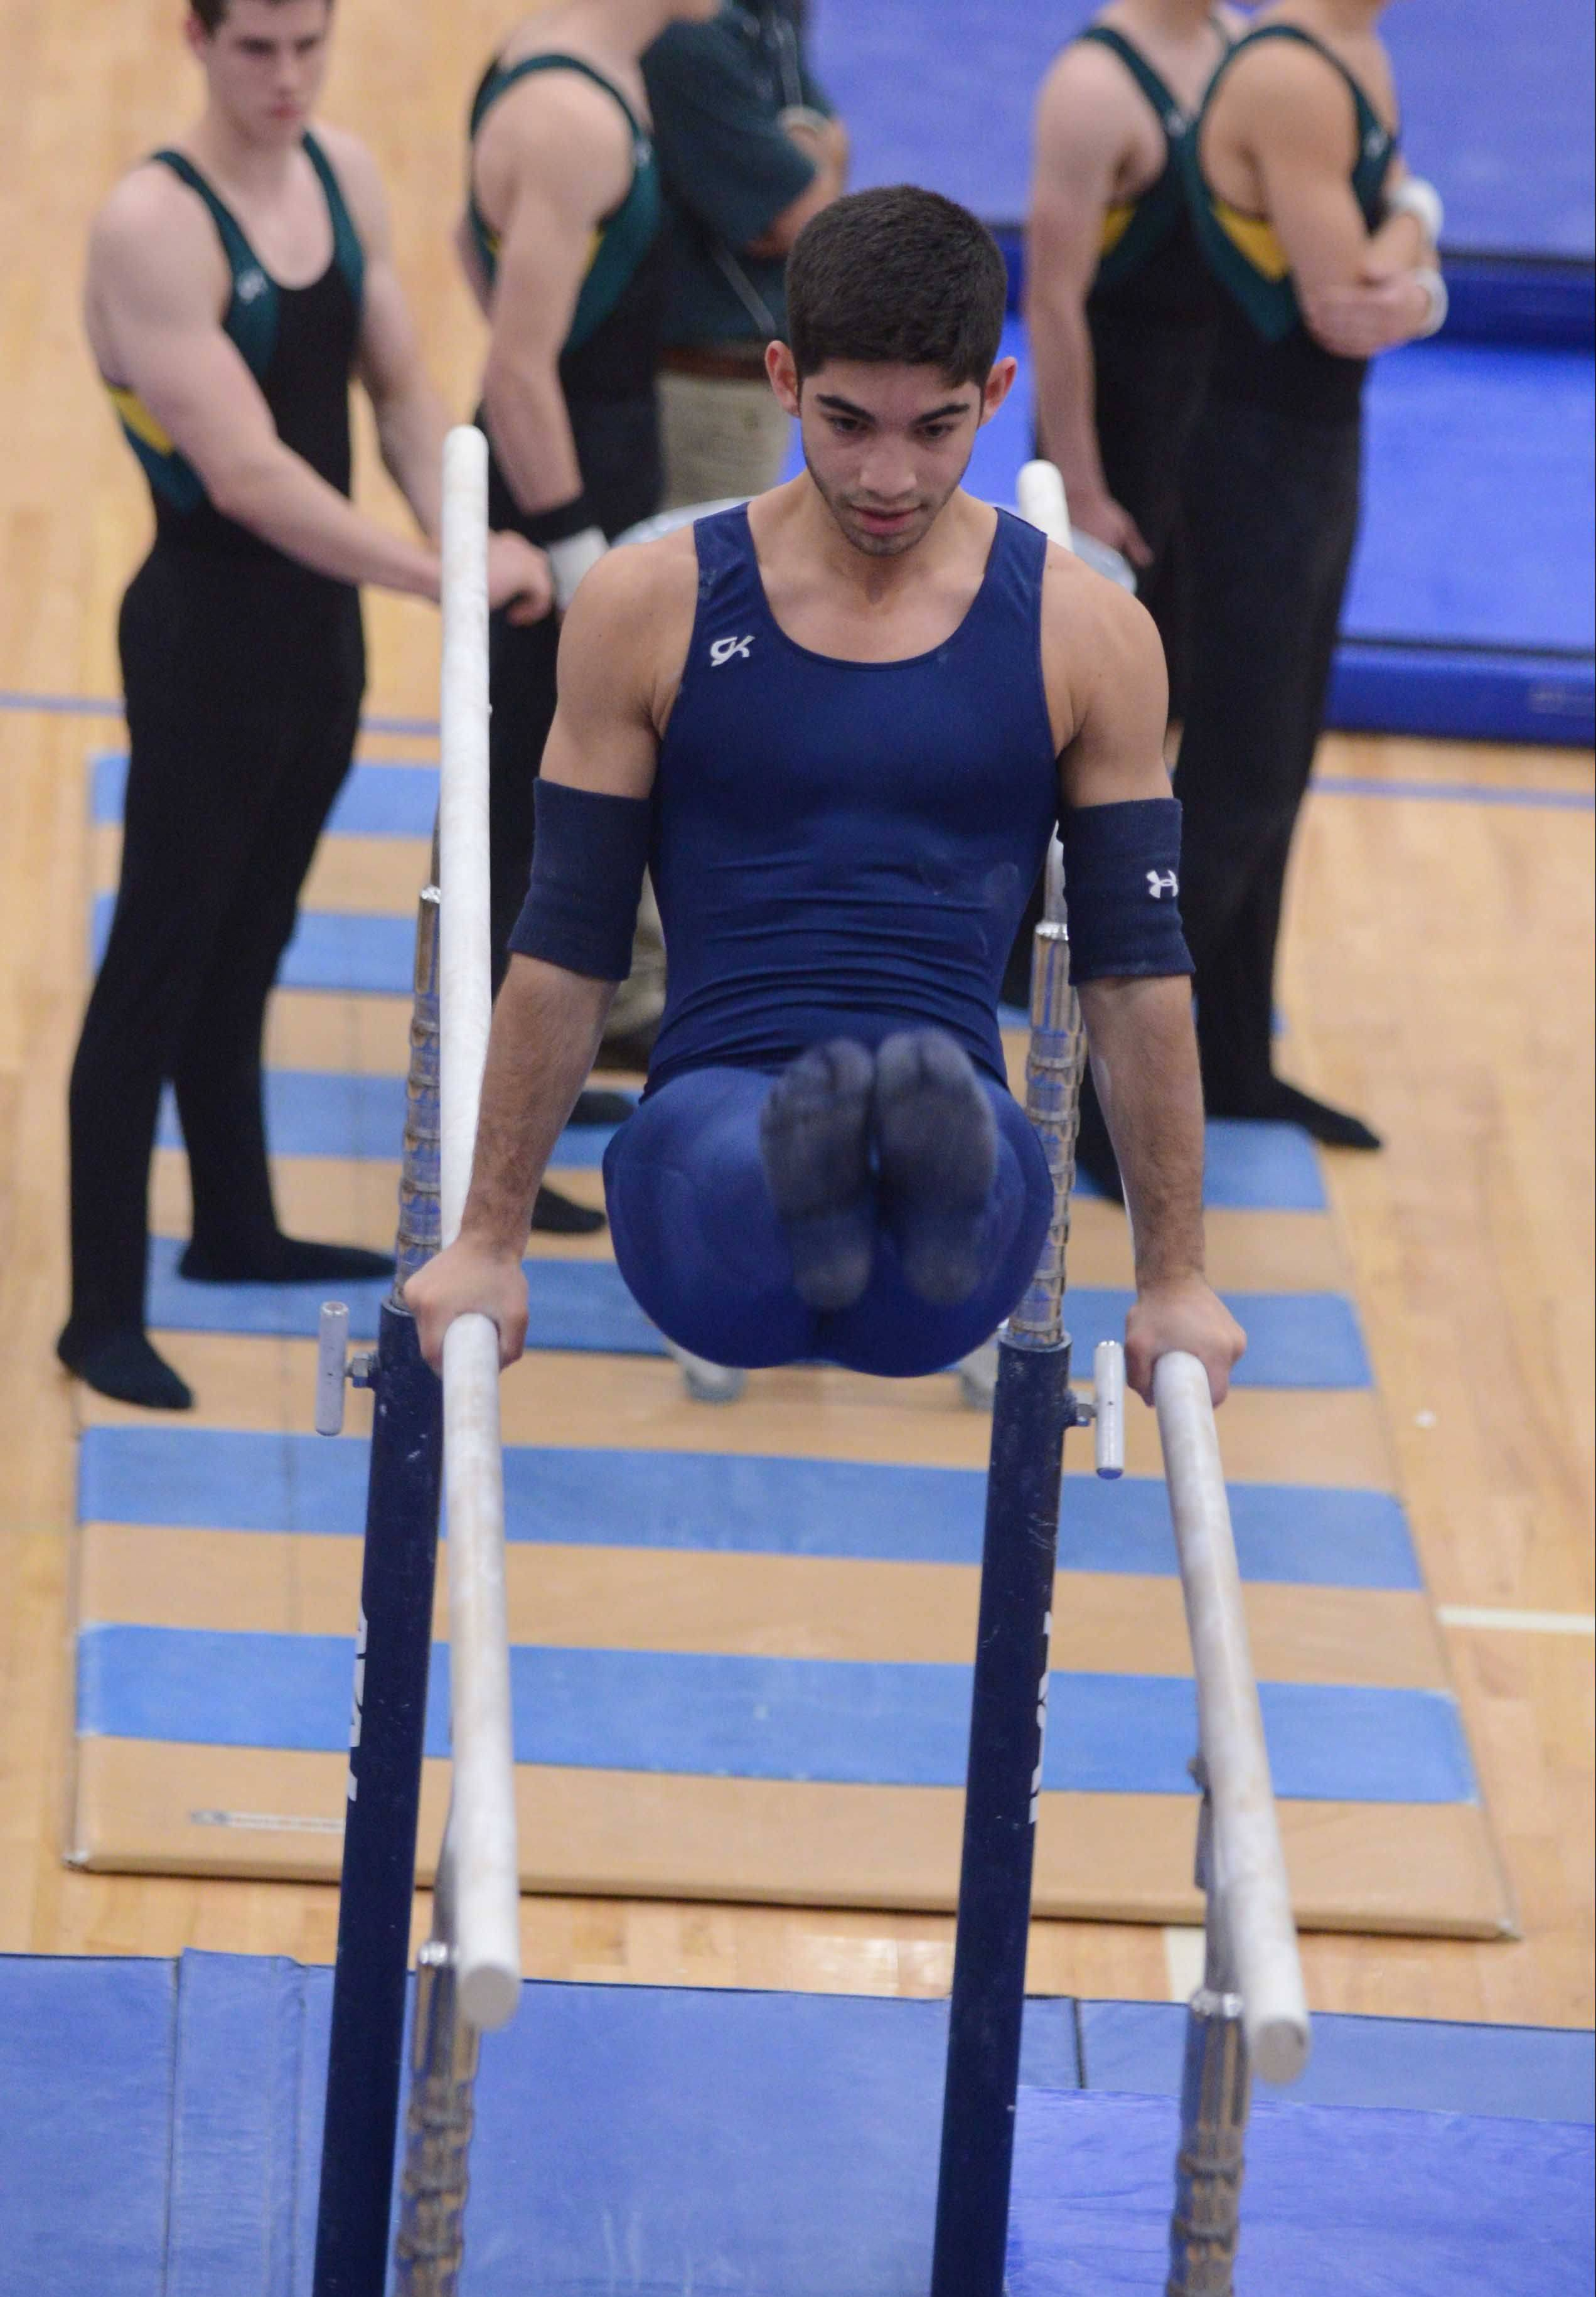 Zac Halap of Buffalo Grove on the parallel bars during the boys gymnastics state finals Friday at Lincoln-Way East.